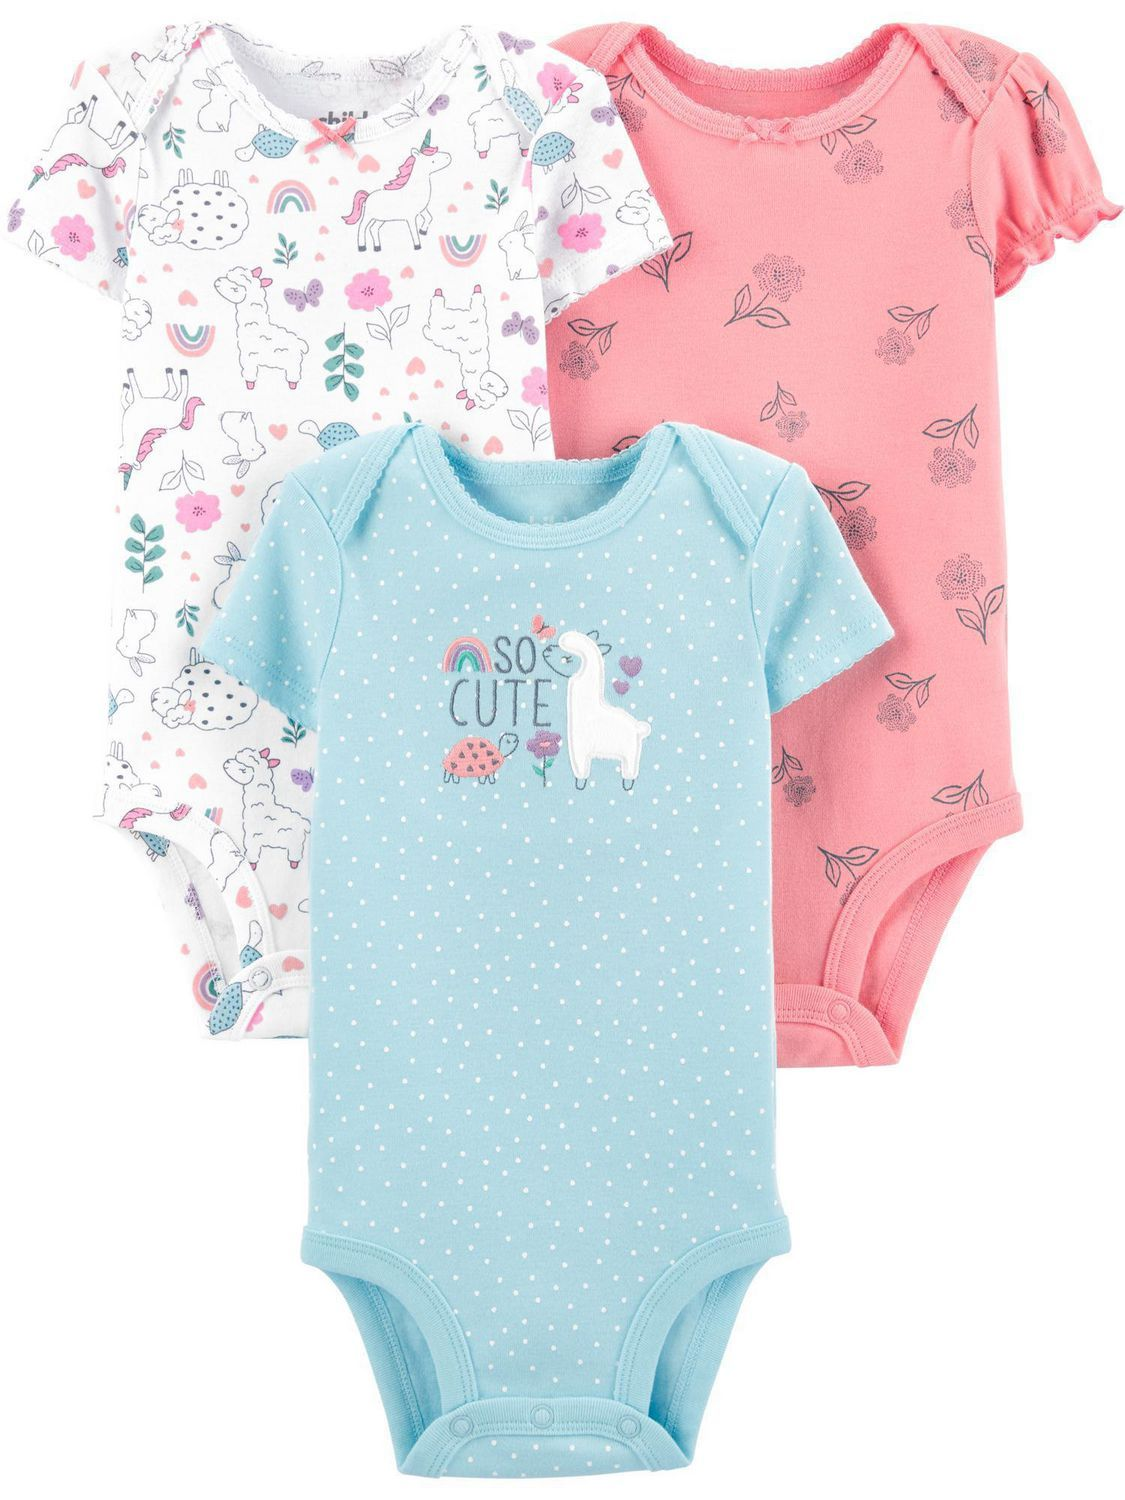 Kit Bodie Cute Child Of Mine By Carter's